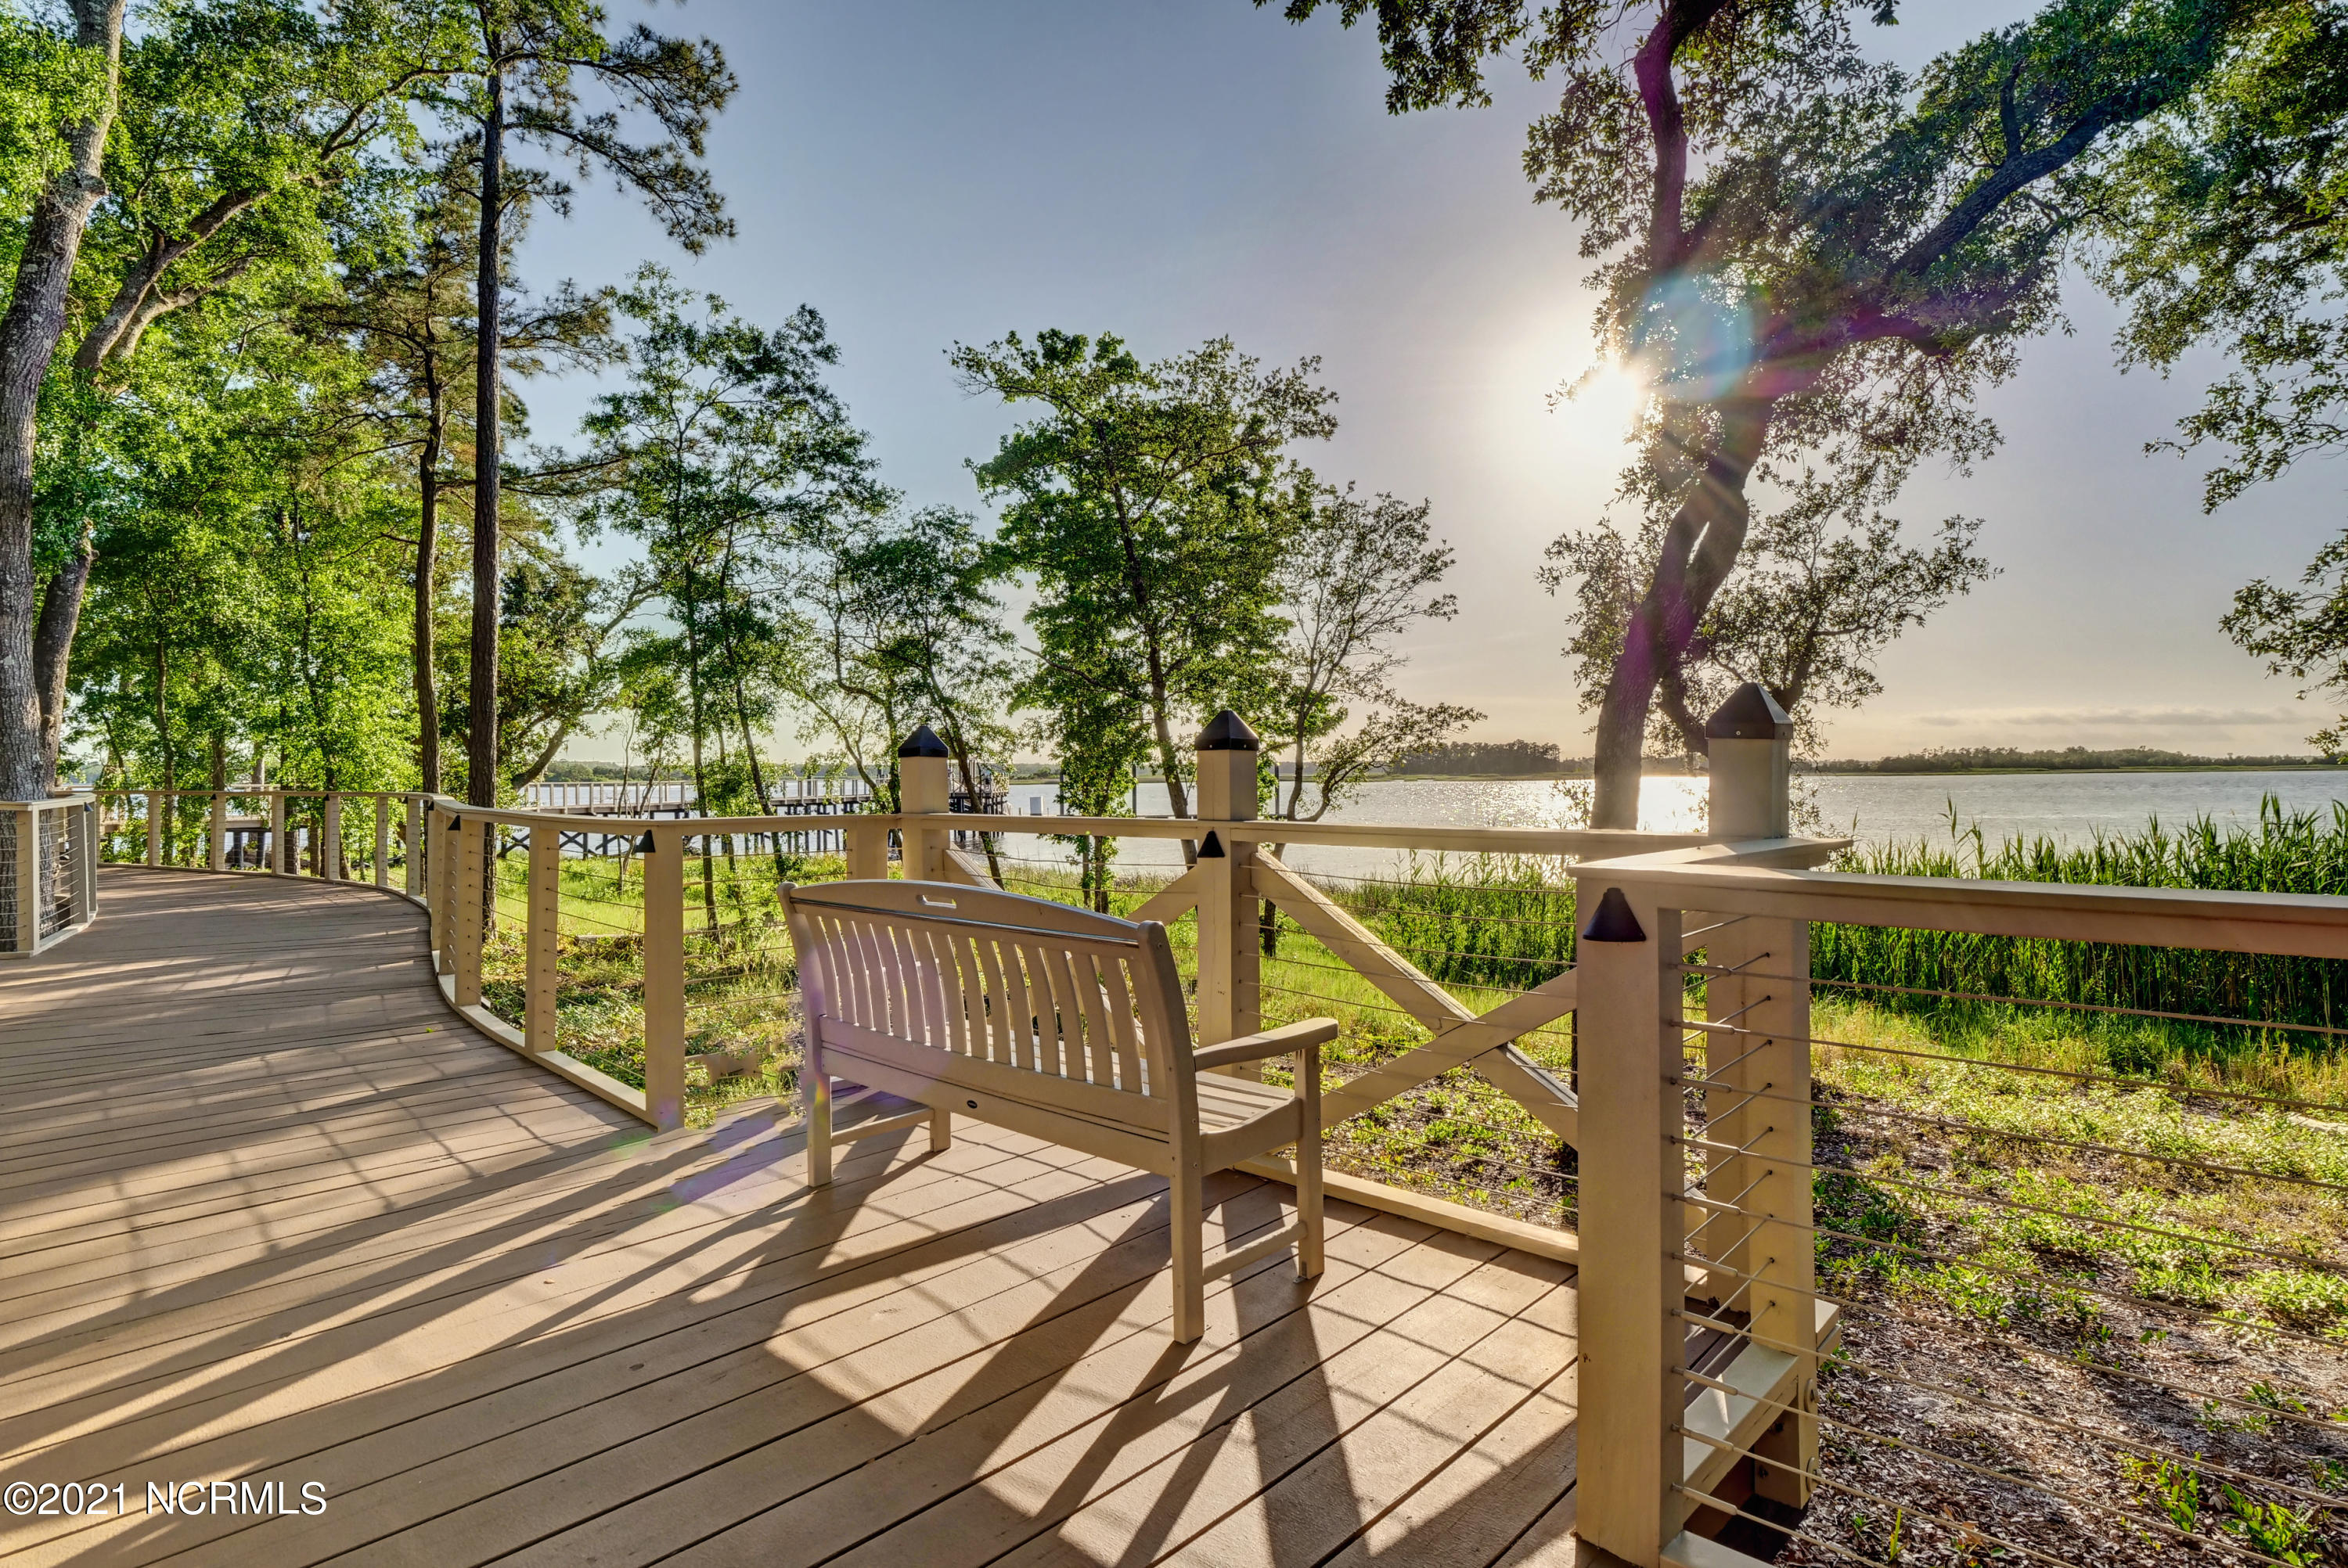 262 Trisail Terrace, Wilmington, North Carolina 28412, 4 Bedrooms Bedrooms, 8 Rooms Rooms,3 BathroomsBathrooms,Single family residence,For sale,Trisail,100277726